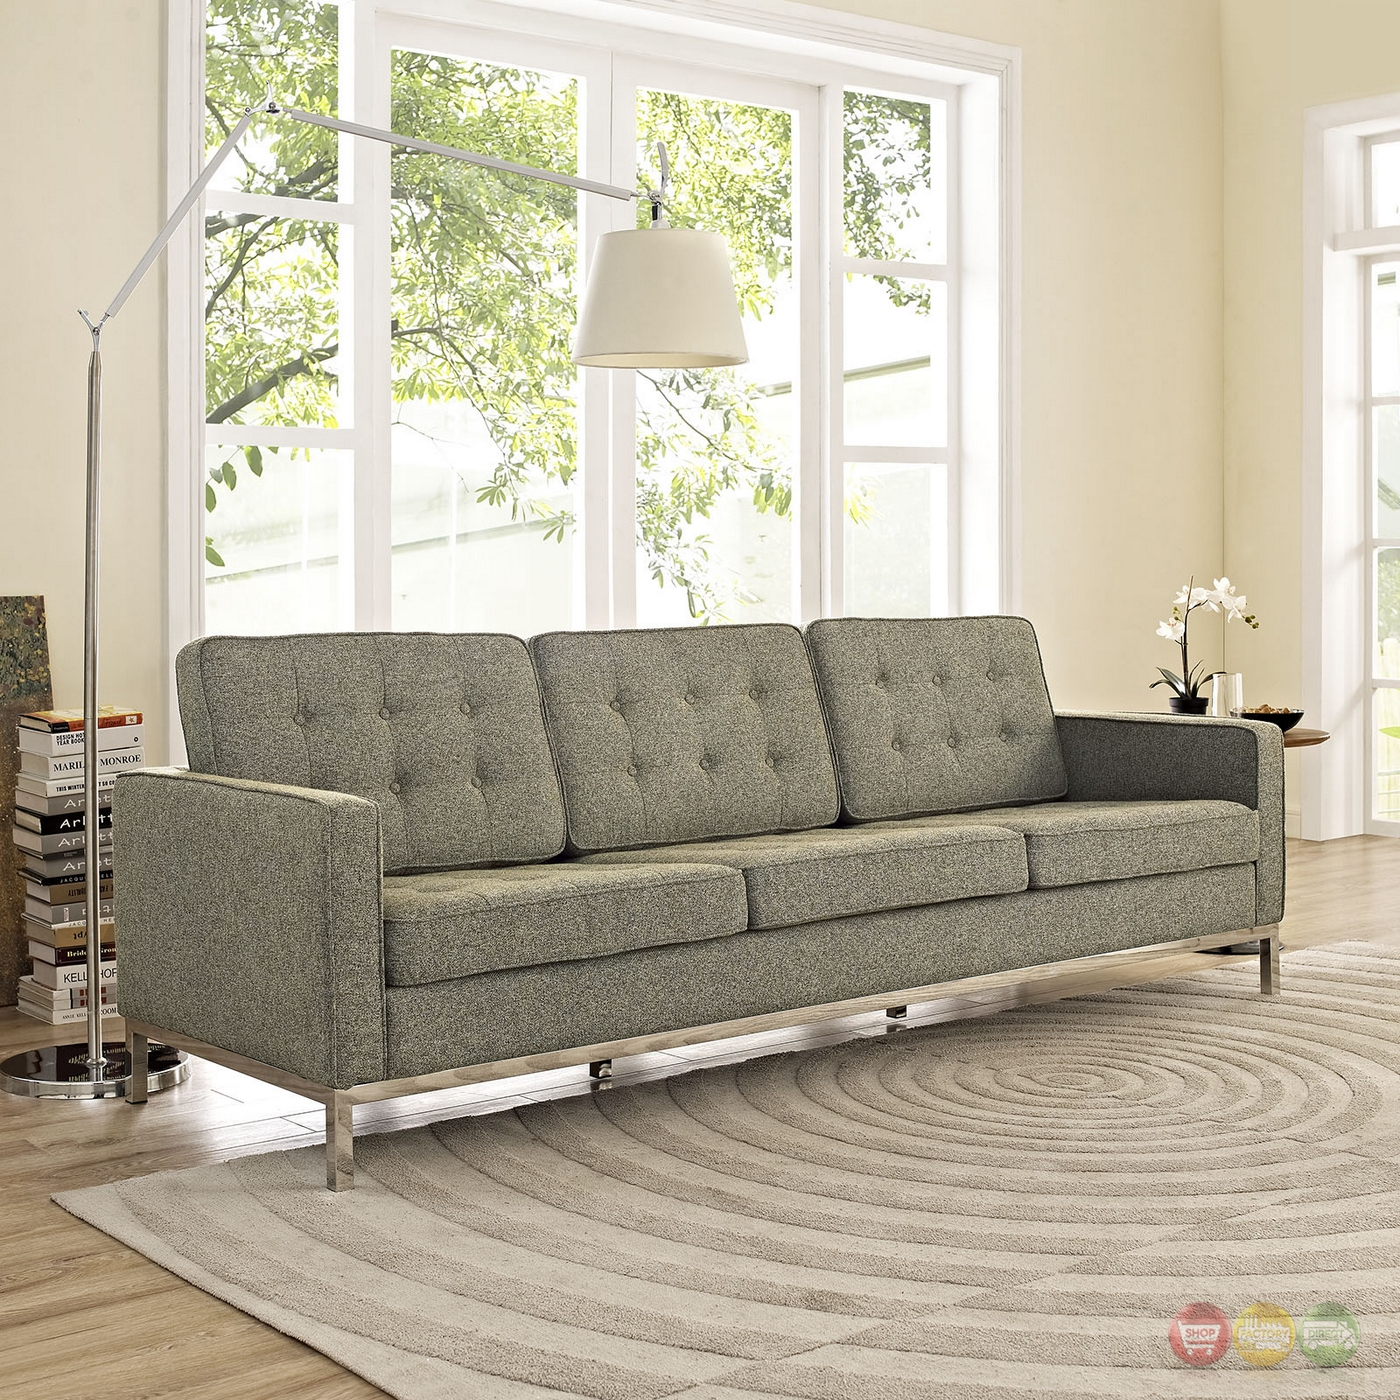 Loft Contemporary Button Tufted Upholstered Sofa W Chrome